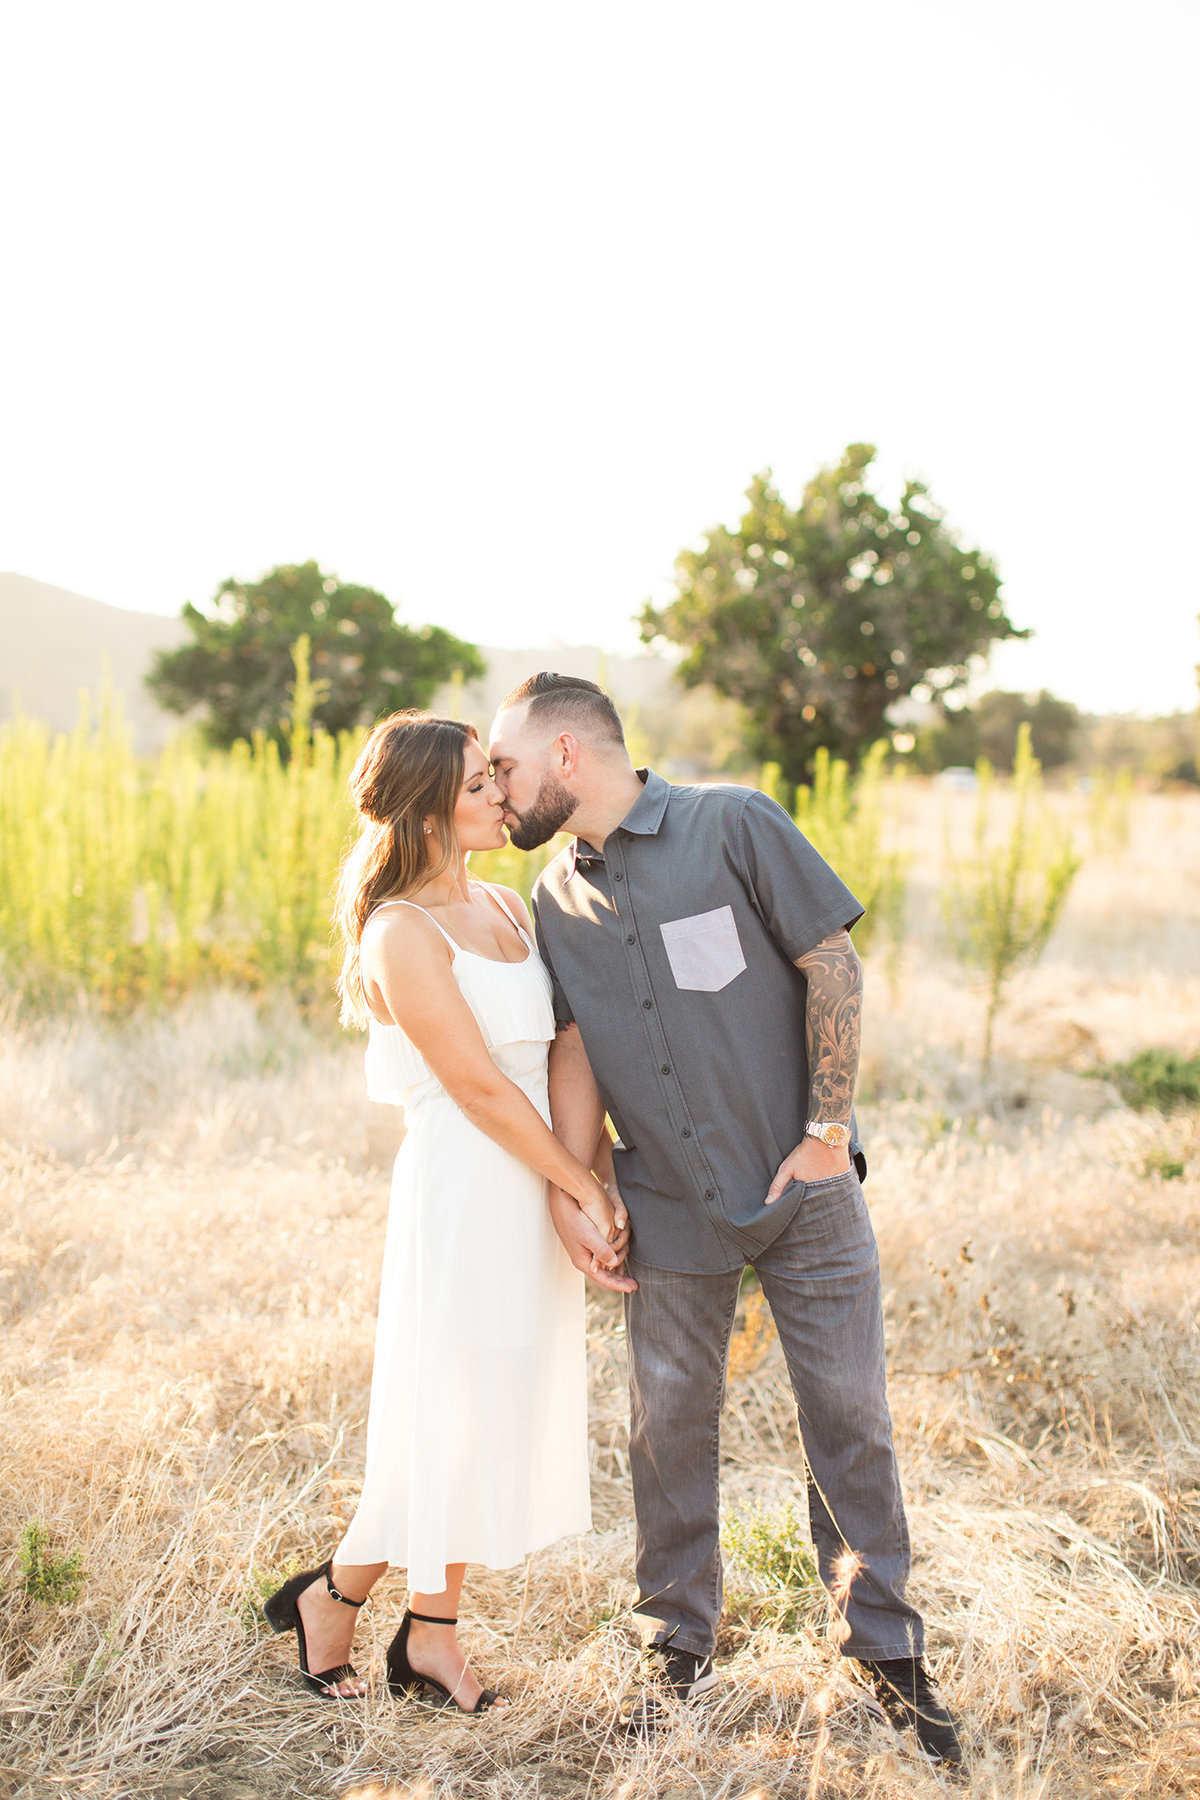 greer_derek_san_juan_capistrano_engagement_session-64